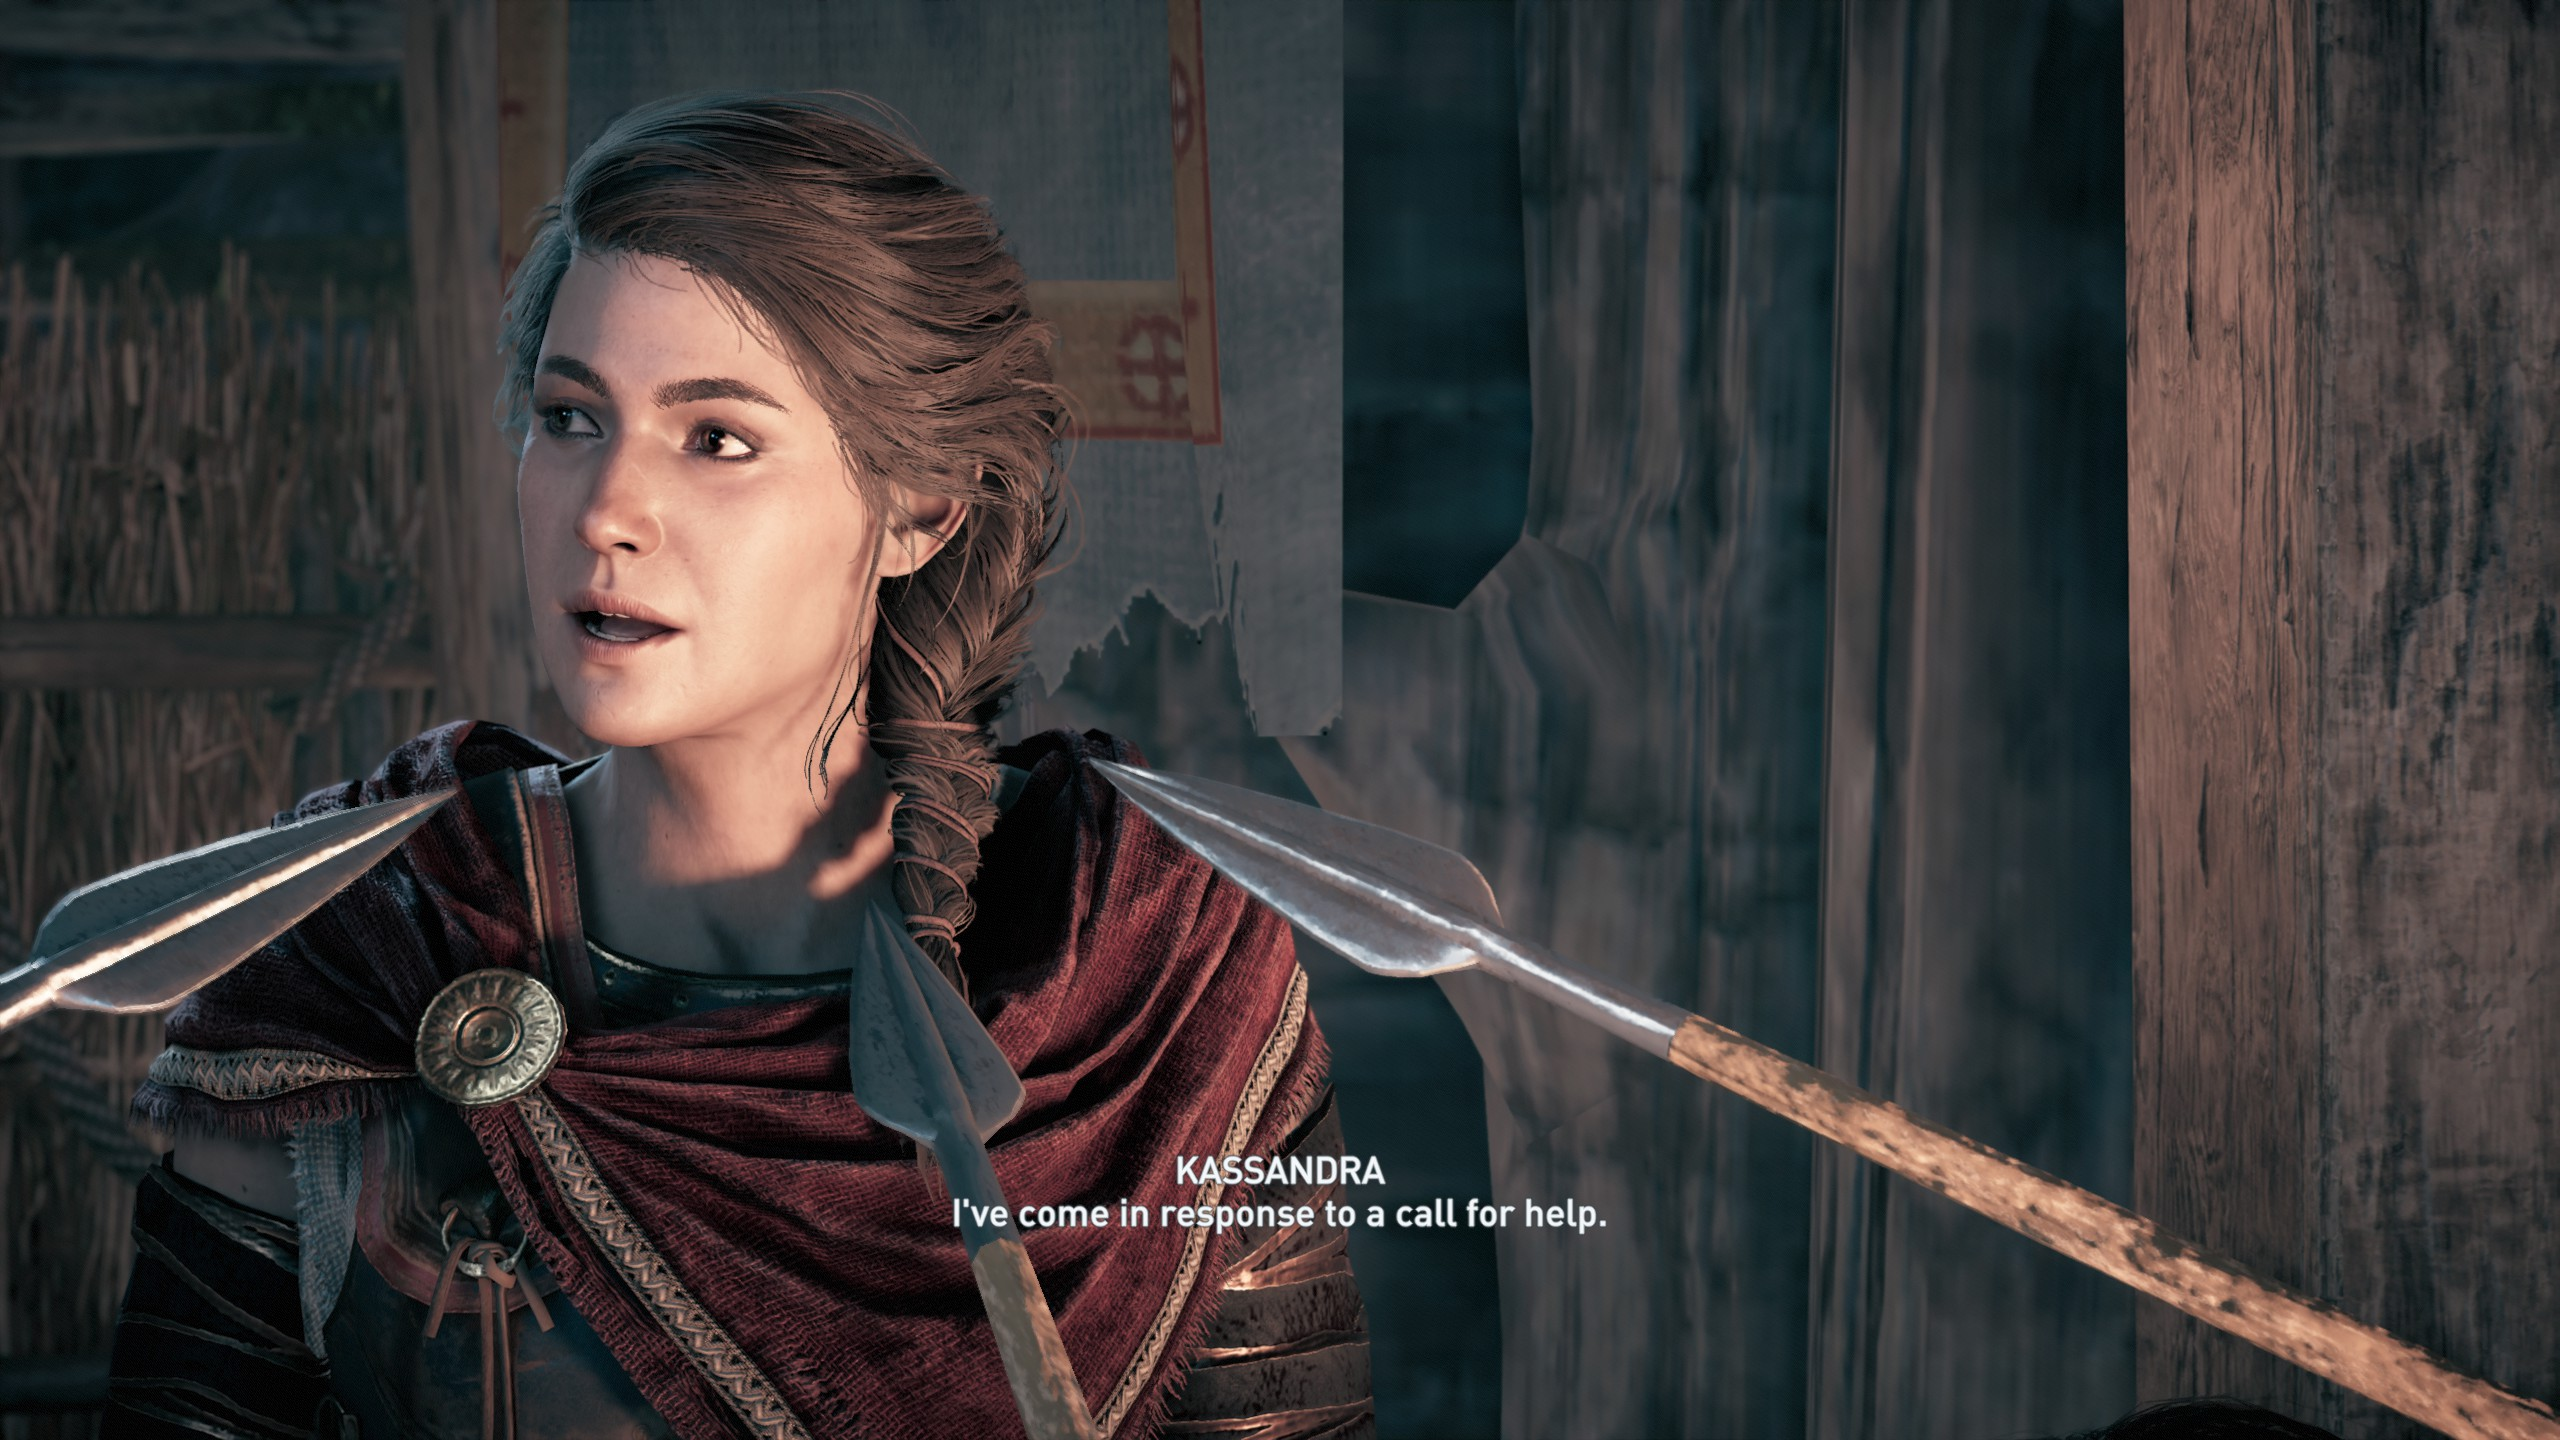 Sorry, no free XP for you, Kassandra. You'll have to stab those Spartans the old fashioned way.